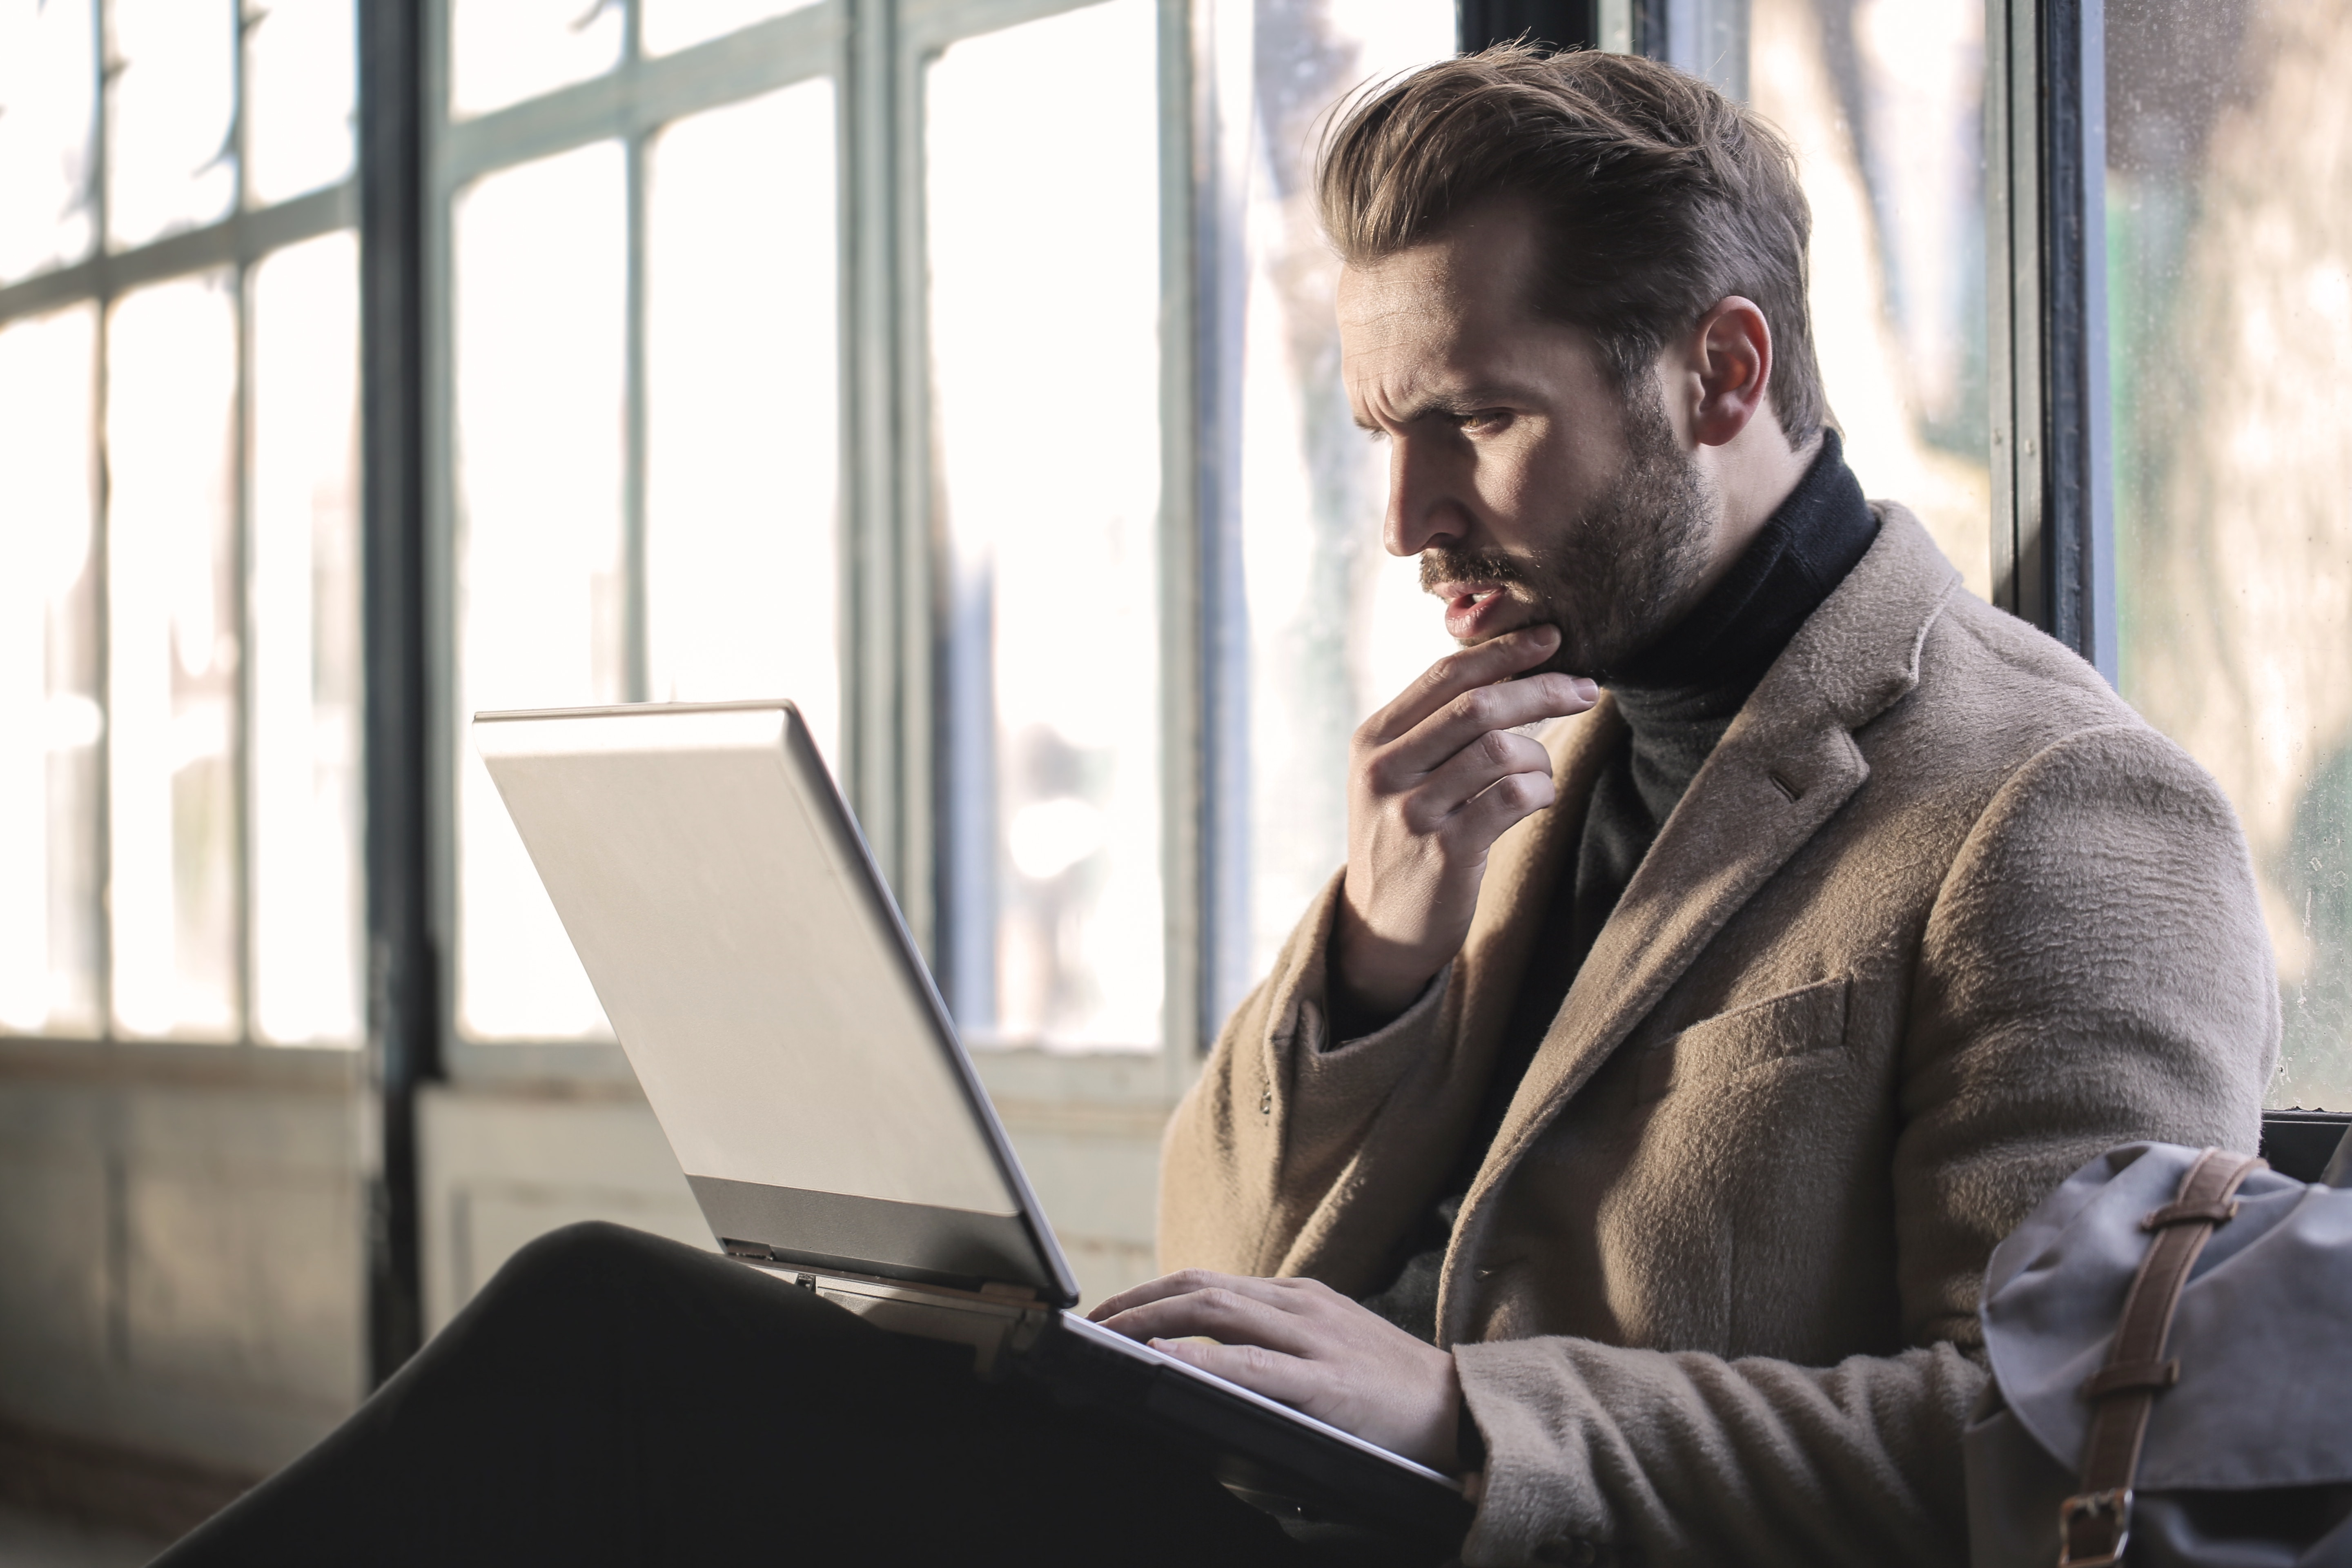 man thinking while sitting holding a laptop